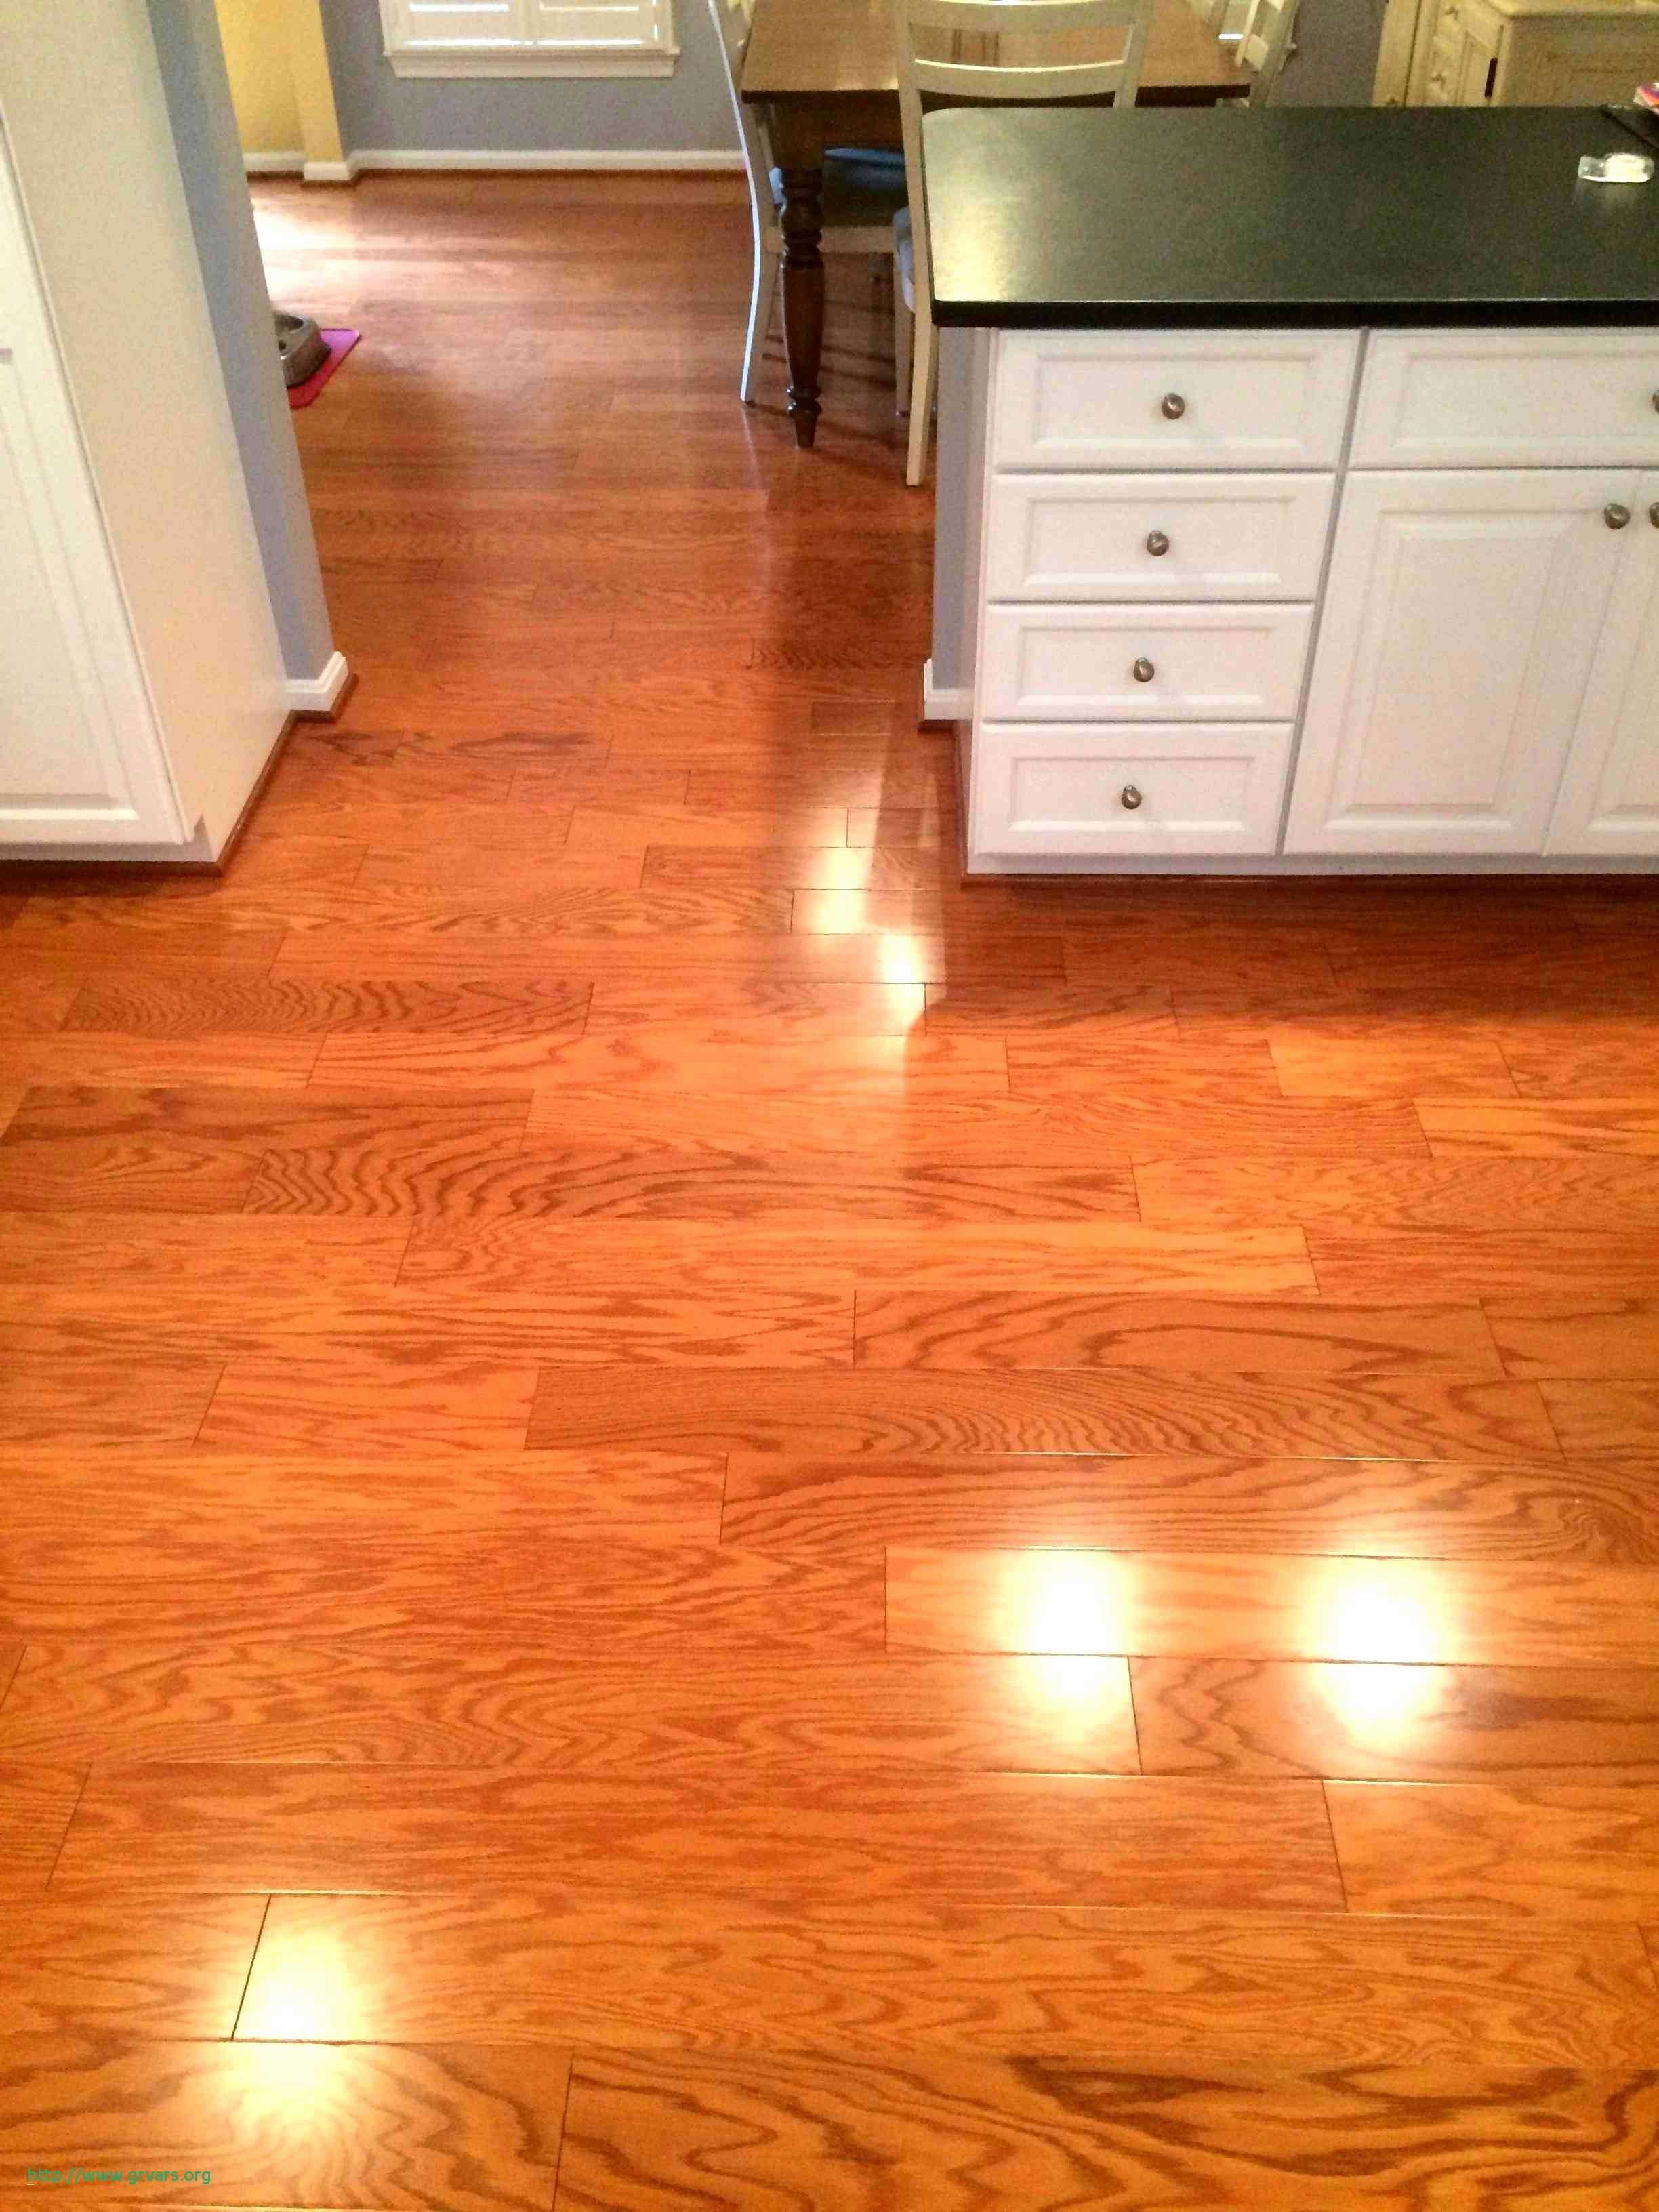 hardwood flooring center hickory nc of 16 charmant columbus flooring and more ideas blog in kitchen hardwood floors fabulous where to buy hardwood flooring inspirational 0d grace place barnegat